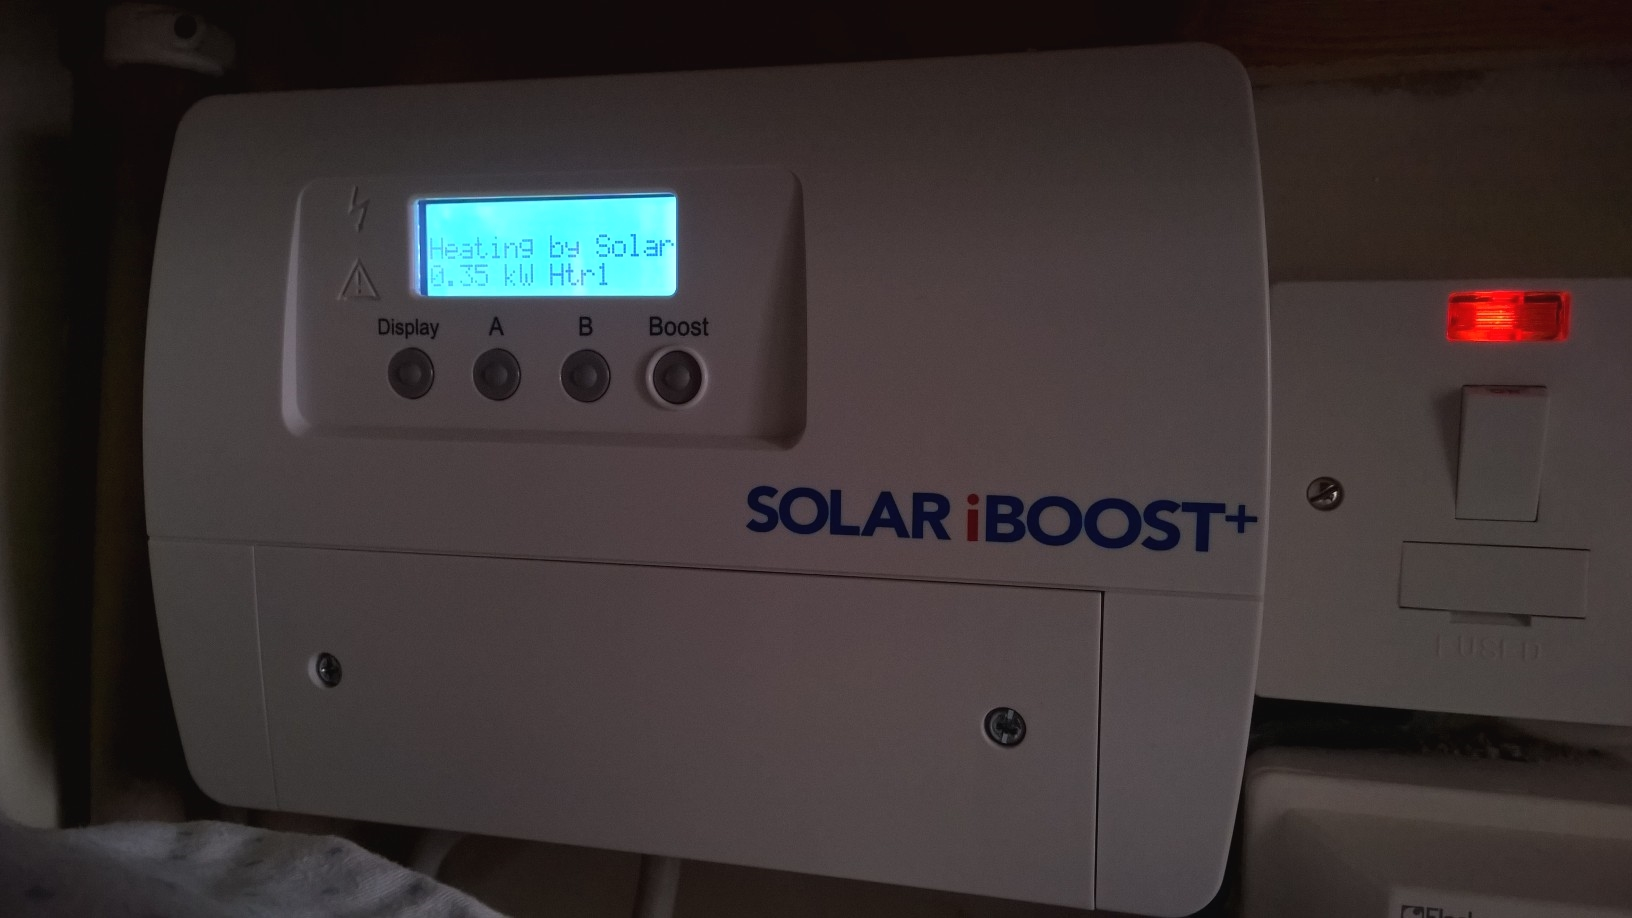 iBoost Hot Water Diversion Unit. It puts excess Solar generation (when the Solar panels are producing more energy than the house is consuming) into the hot water tank by heating water.